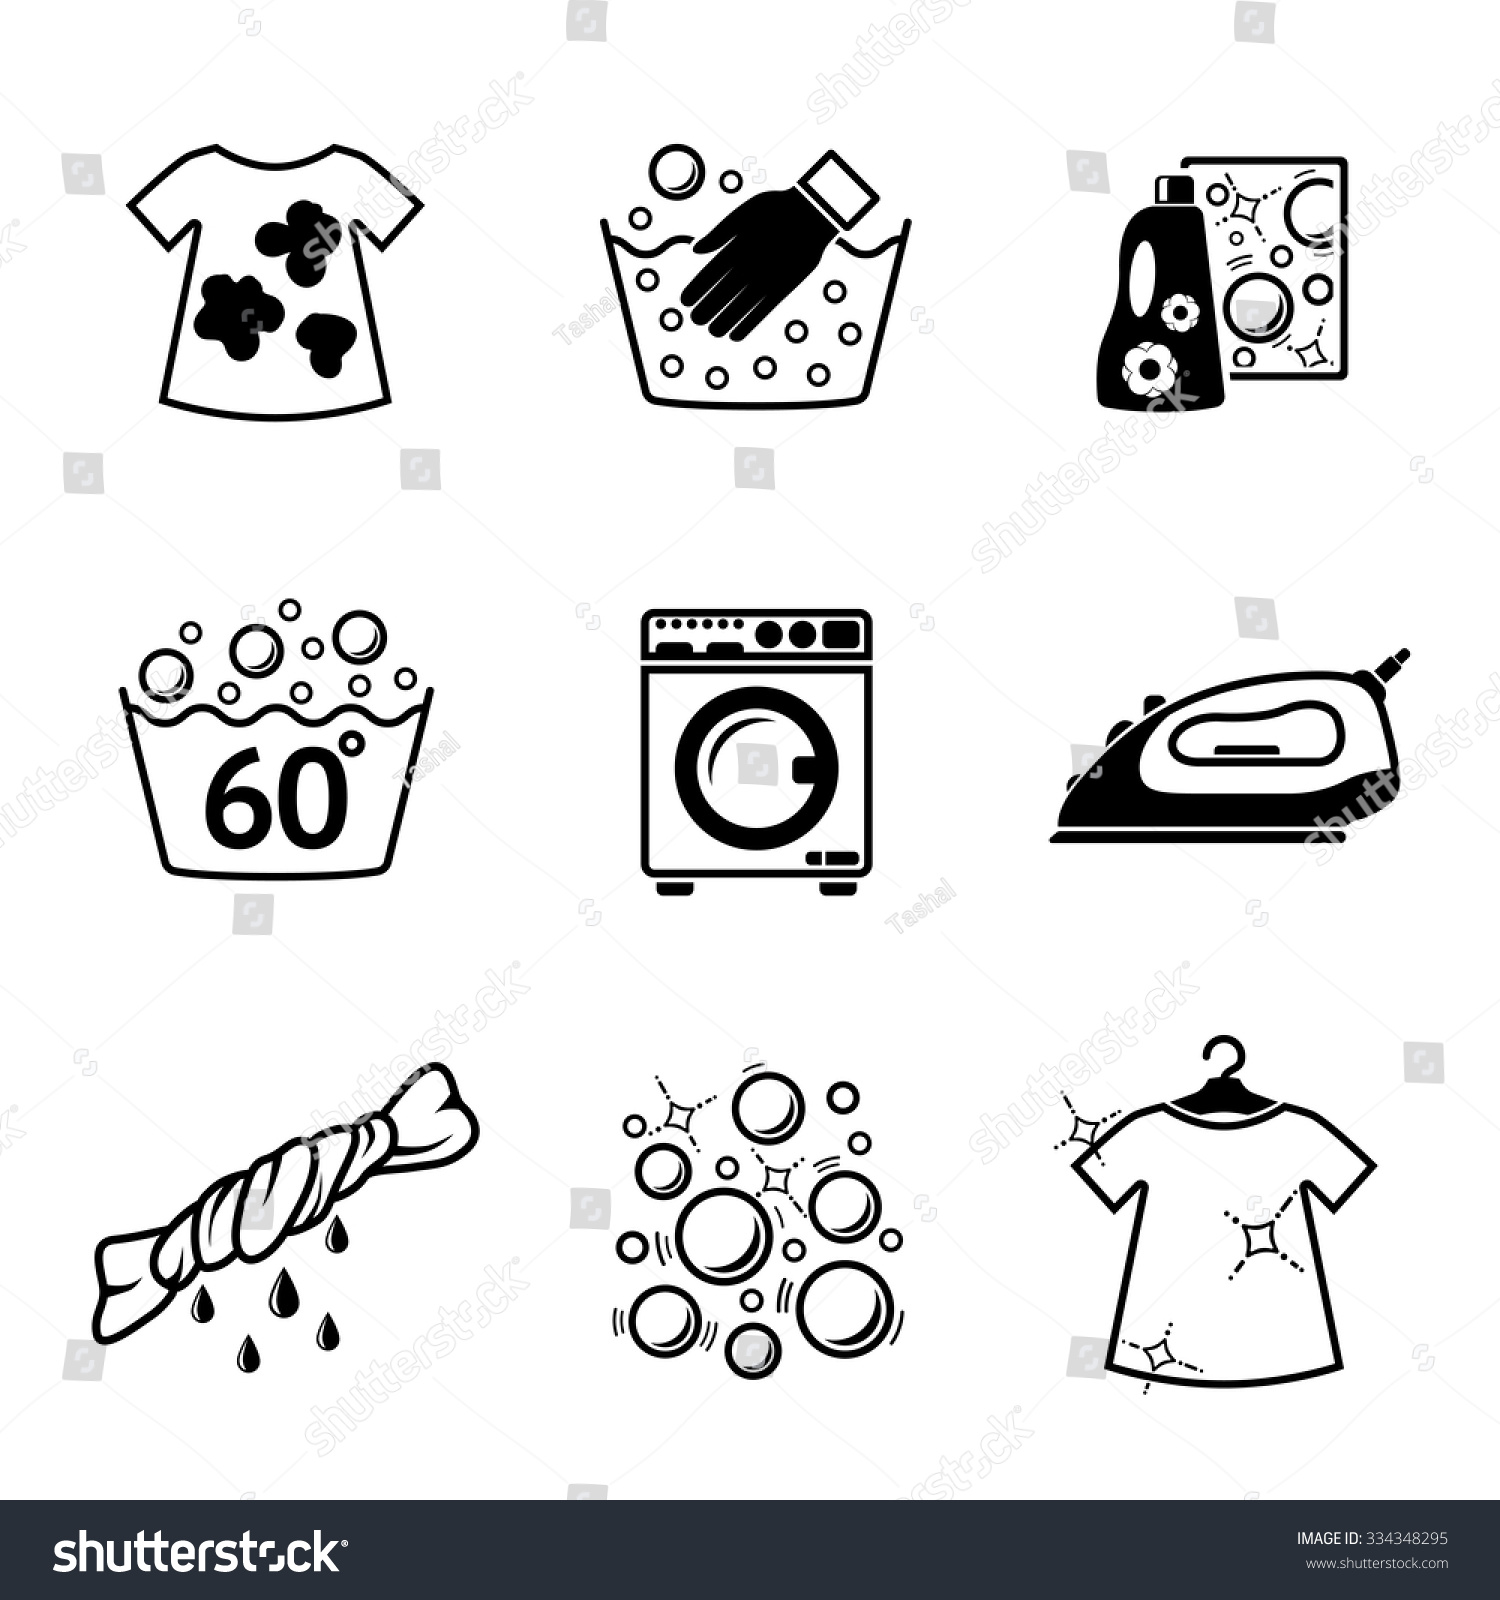 hot water music shirt 1997 honda civic ex stereo wiring diagram set laundry icons clean dirty shirts stock vector